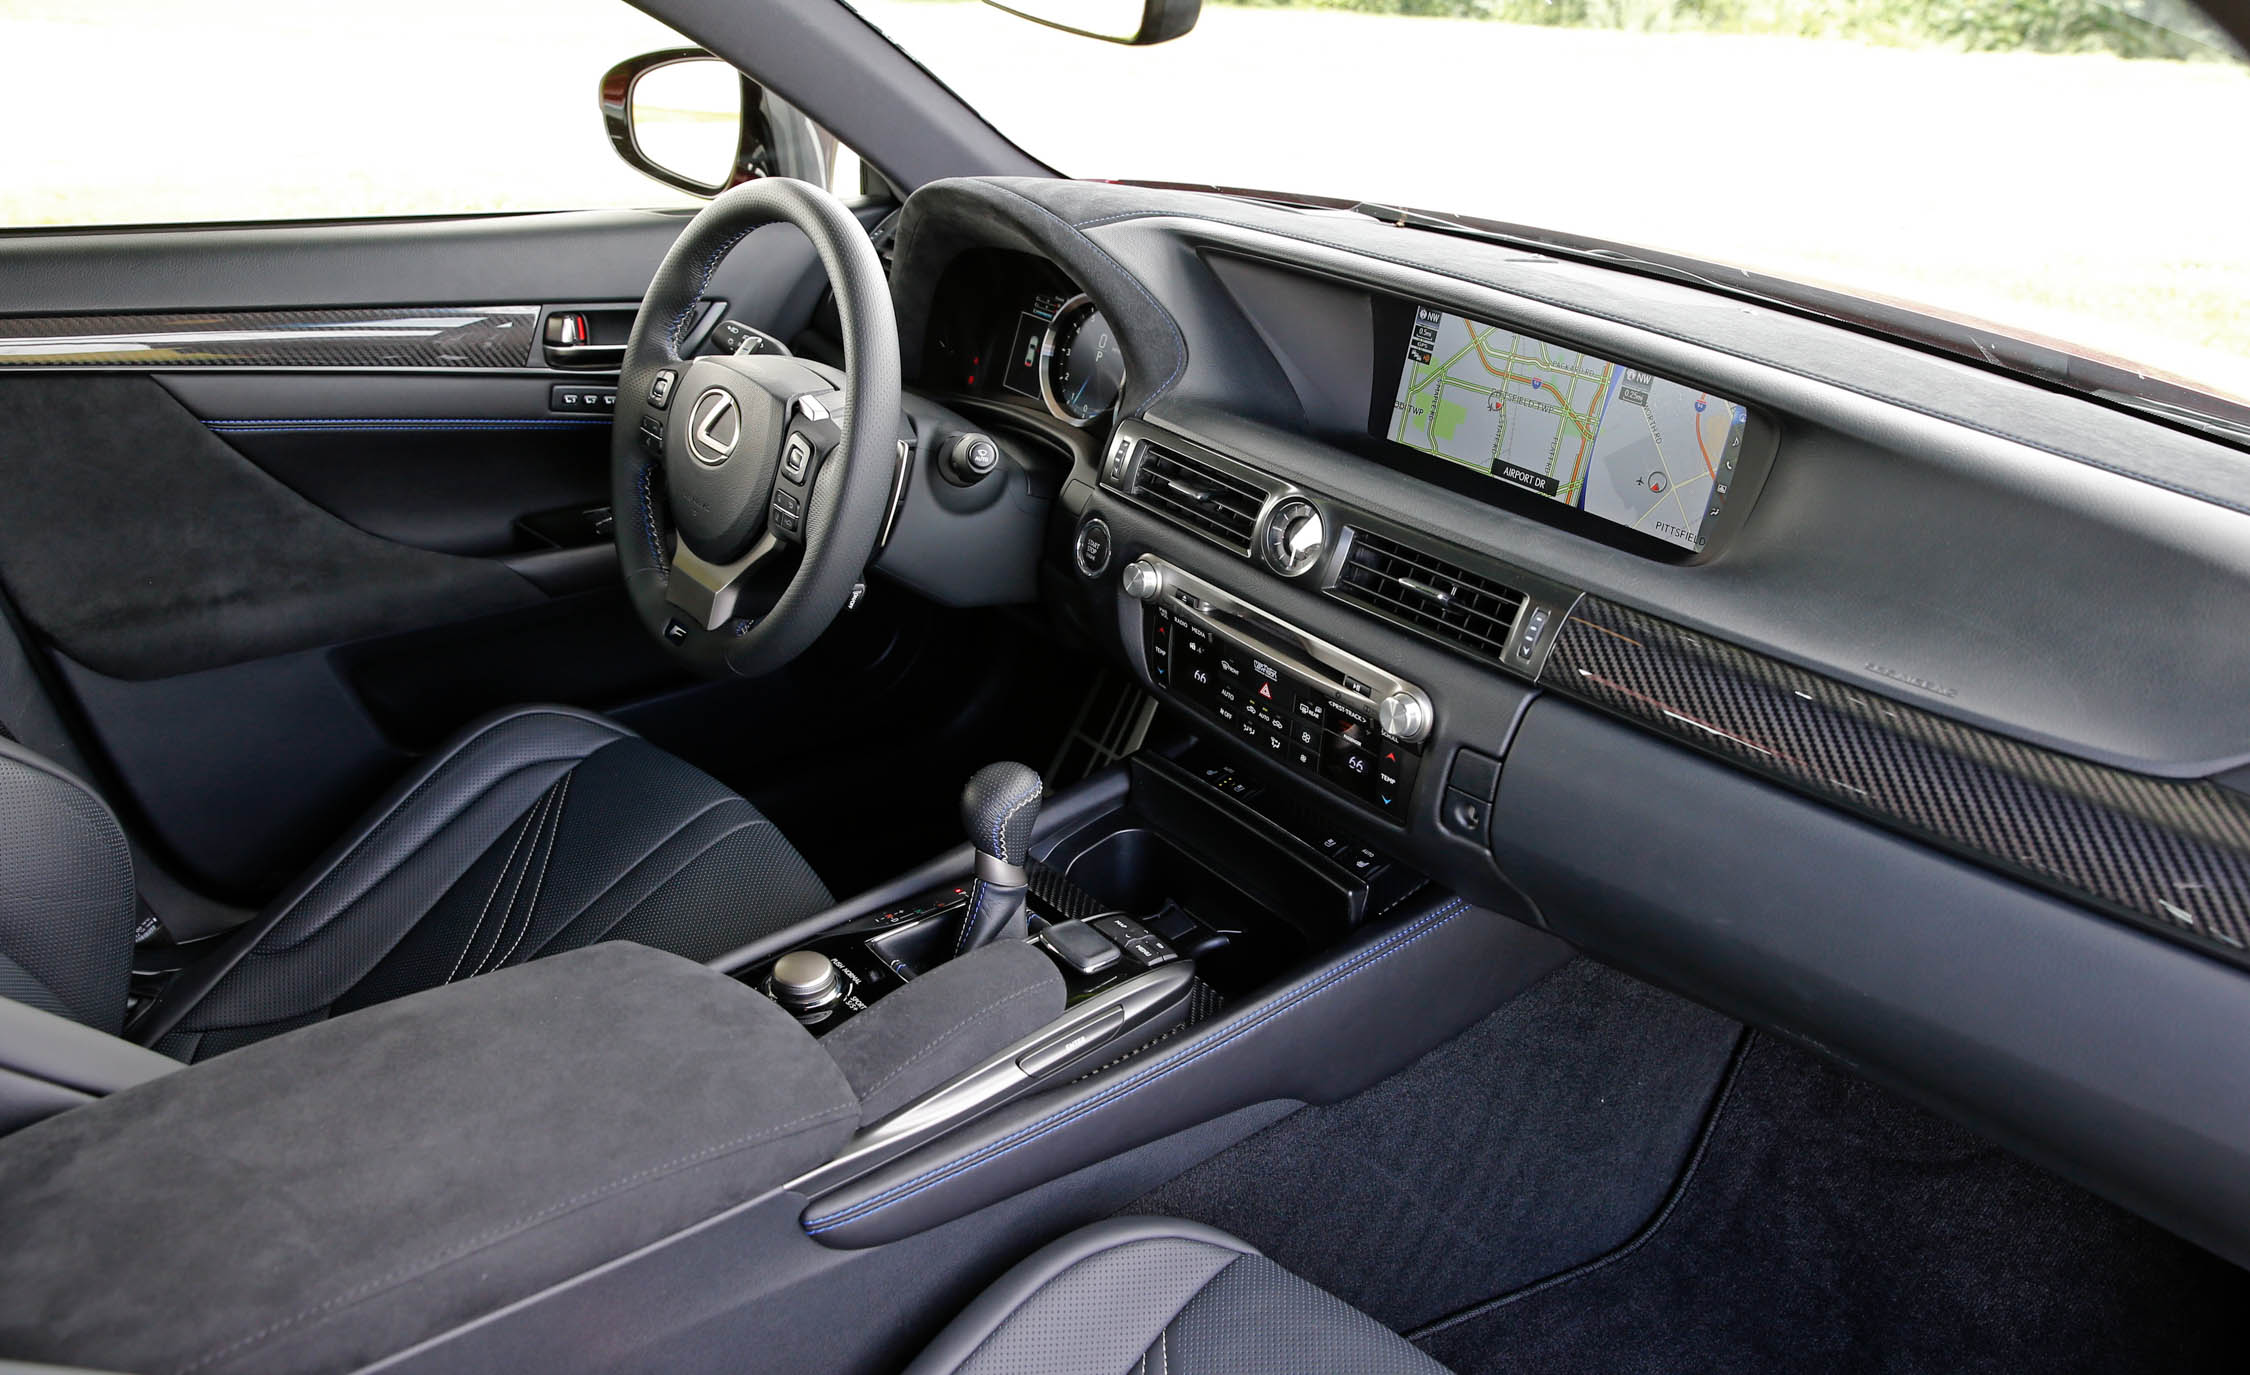 2016 Lexus Gs F Interior Dashboard (Photo 9 of 20)